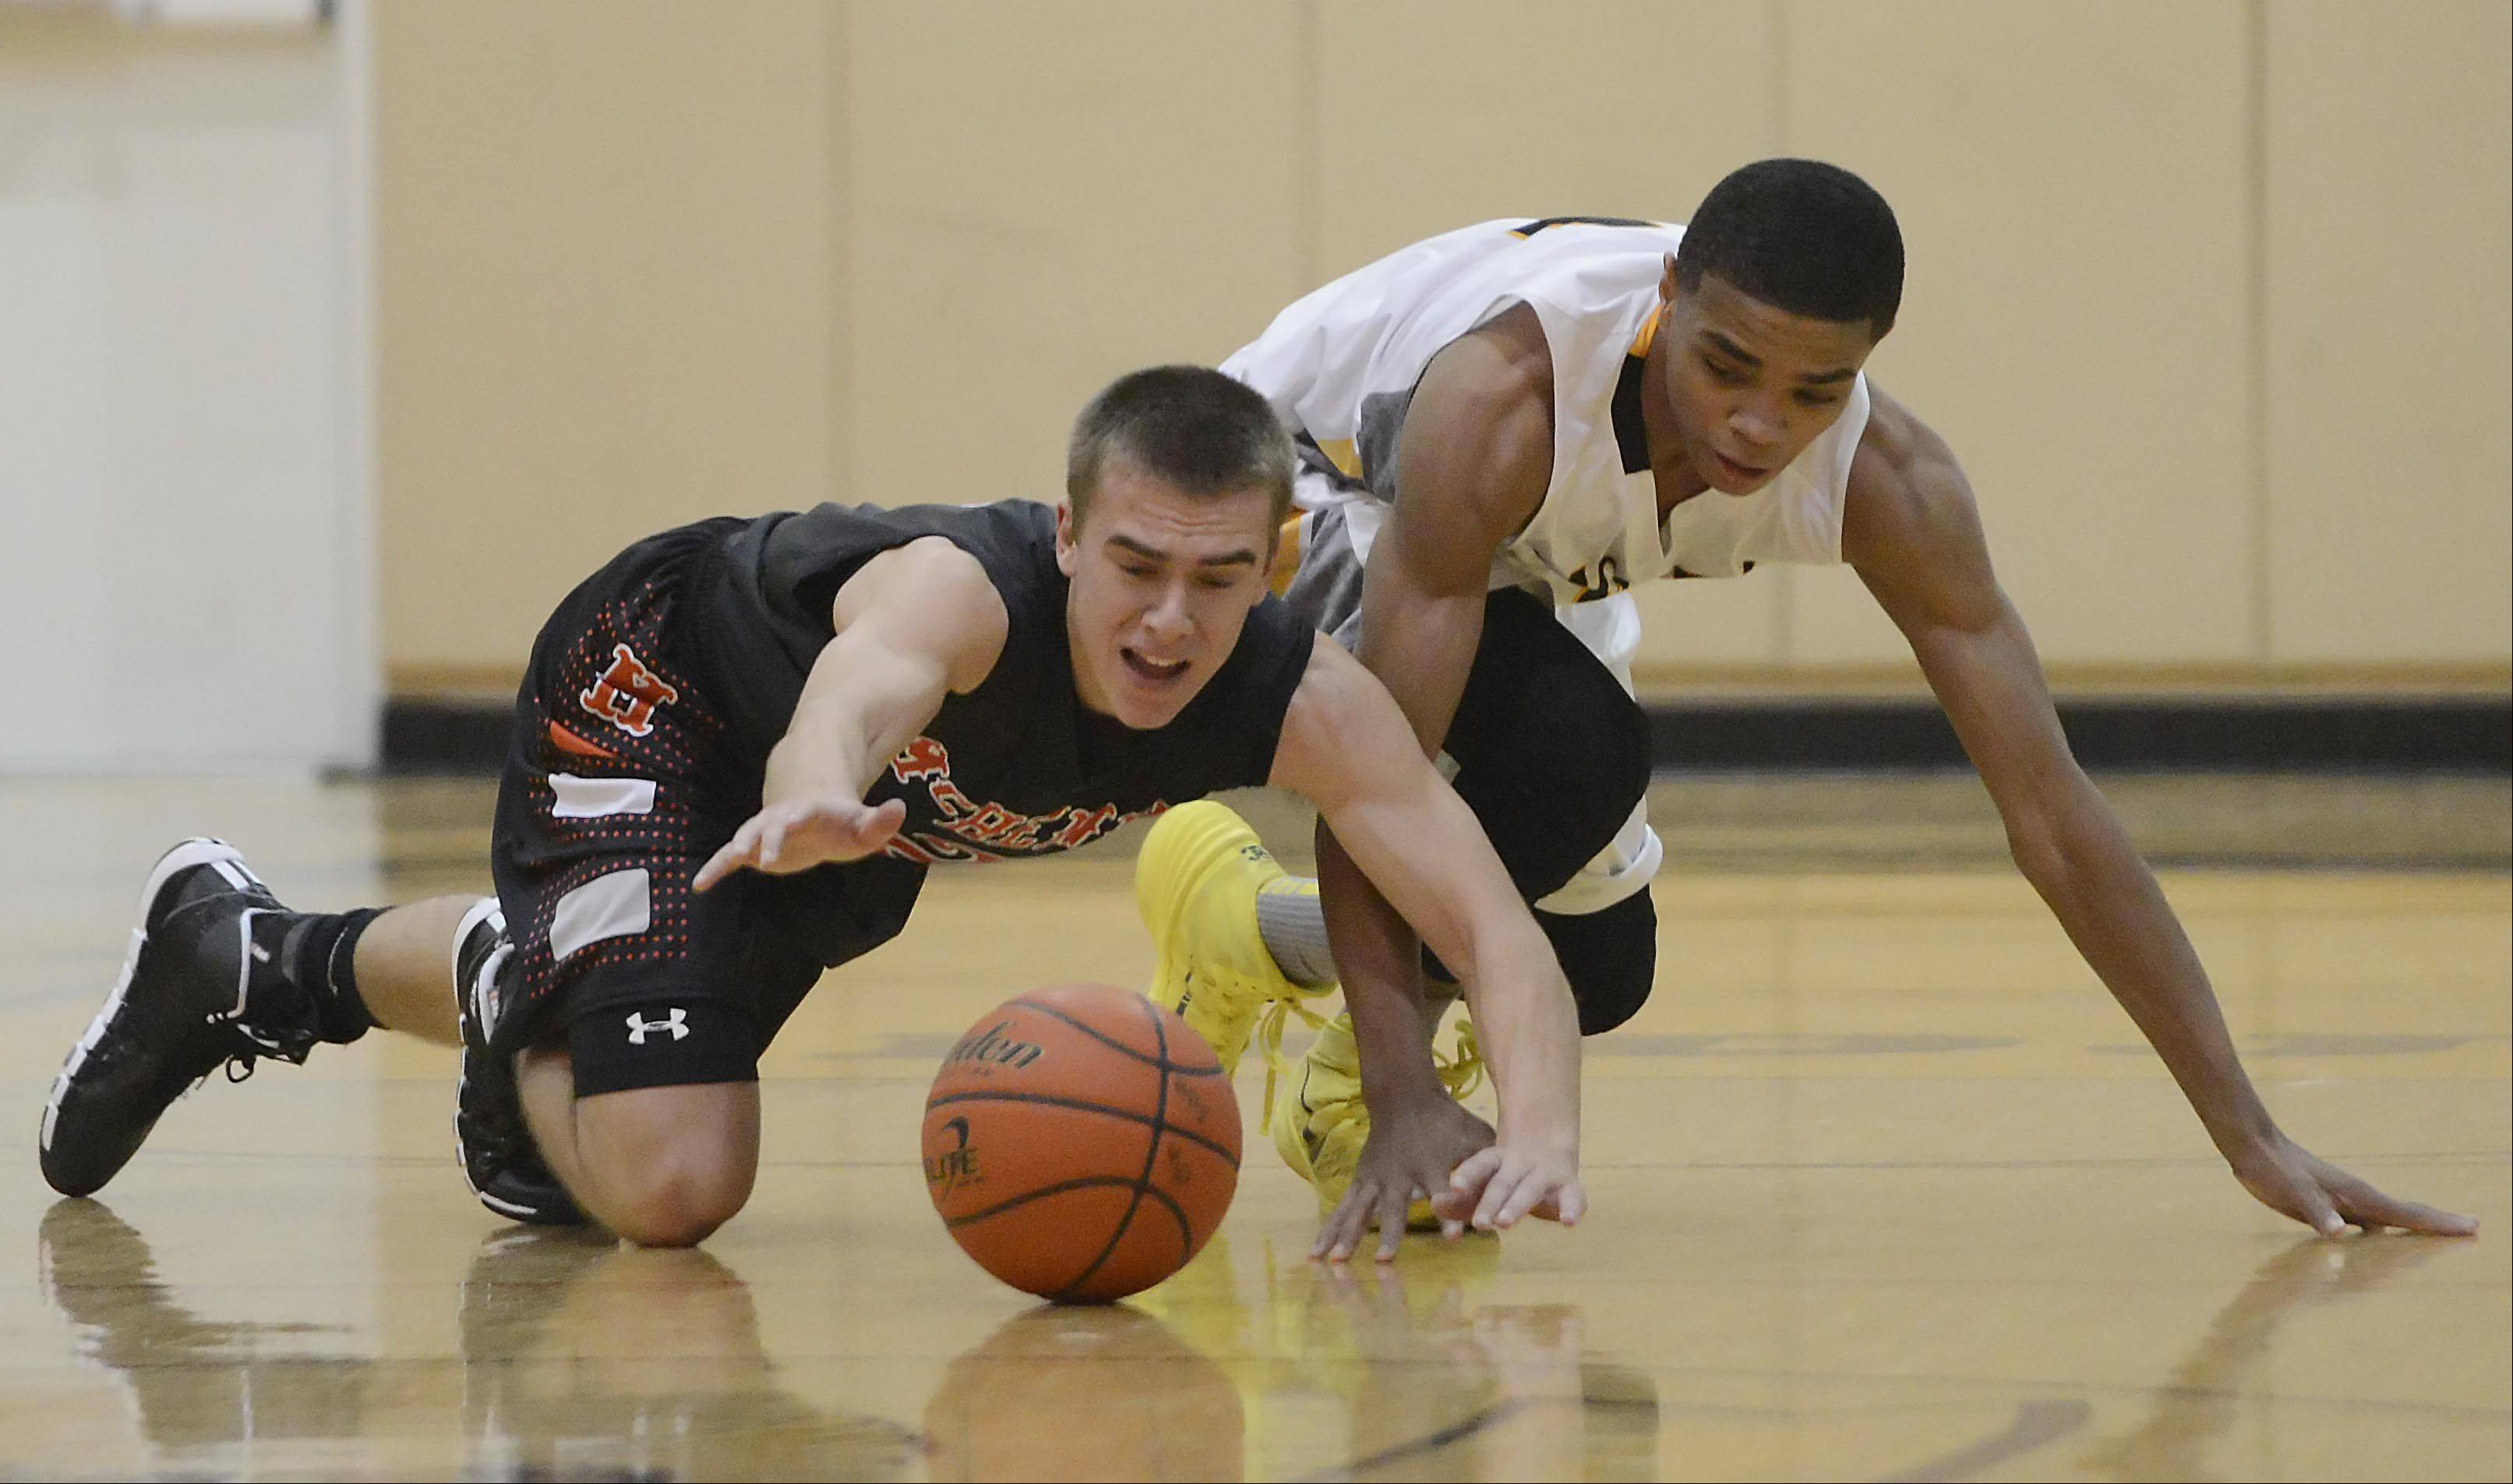 McHenry's Cody Freund and Jacobs' Kenton Mack scramble for a loose ball Wednesday in Algonquin.